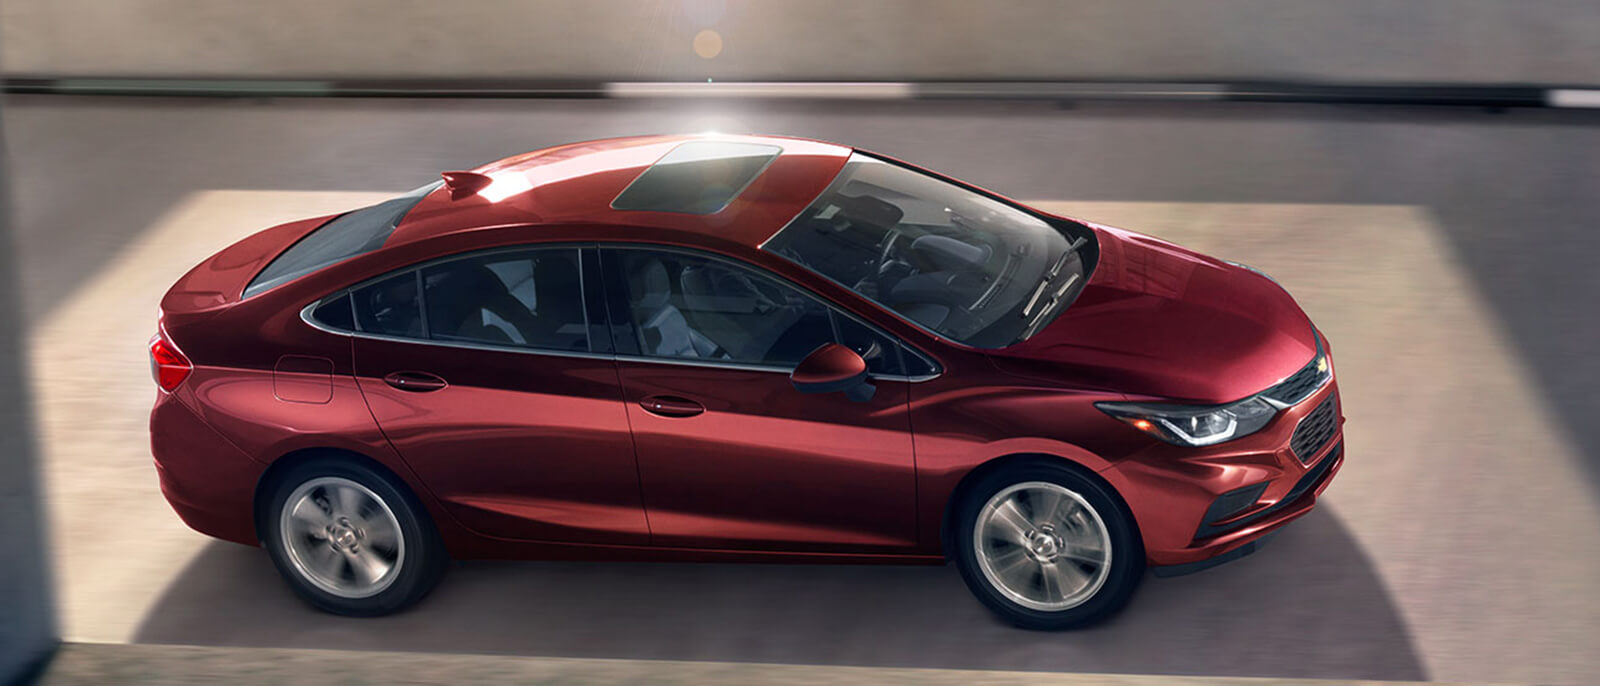 2017 Chevrolet Cruze Interior Dashboard In Red On The Highway